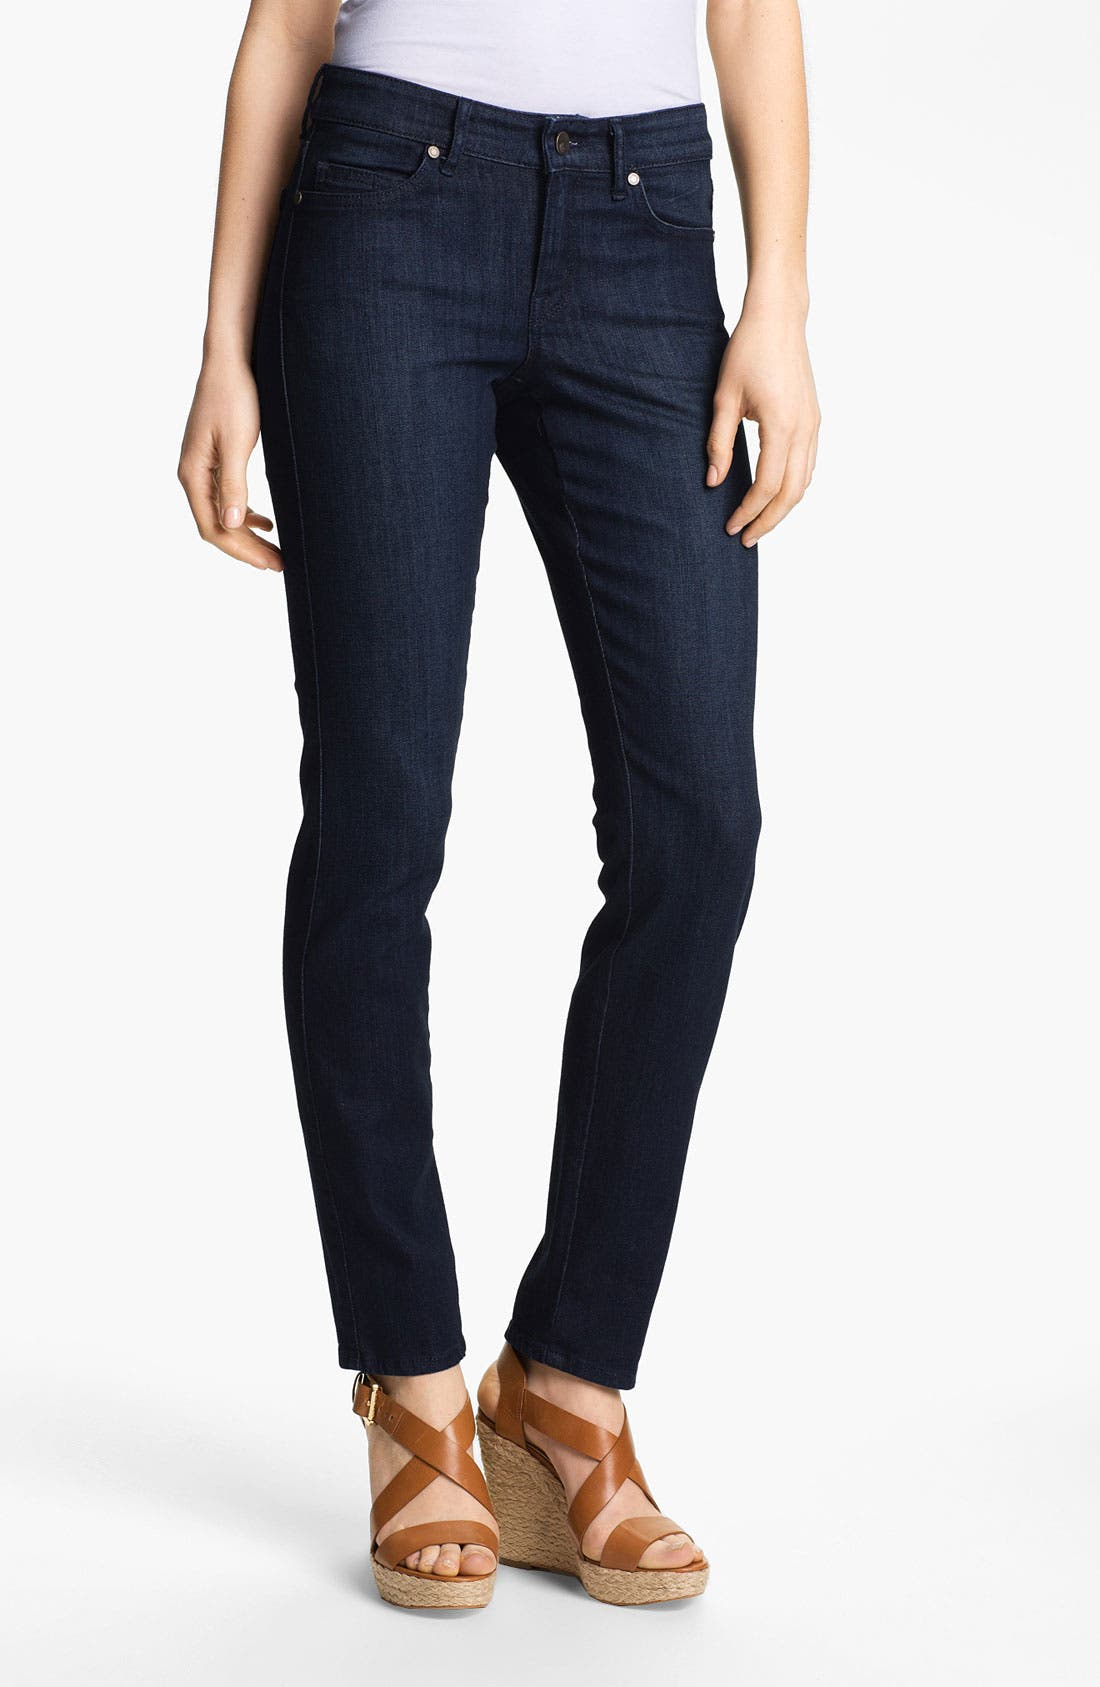 Alternate Image 1 Selected - CJ by Cookie Johnson 'Peace' Skinny Stretch Jeans (Princeville)